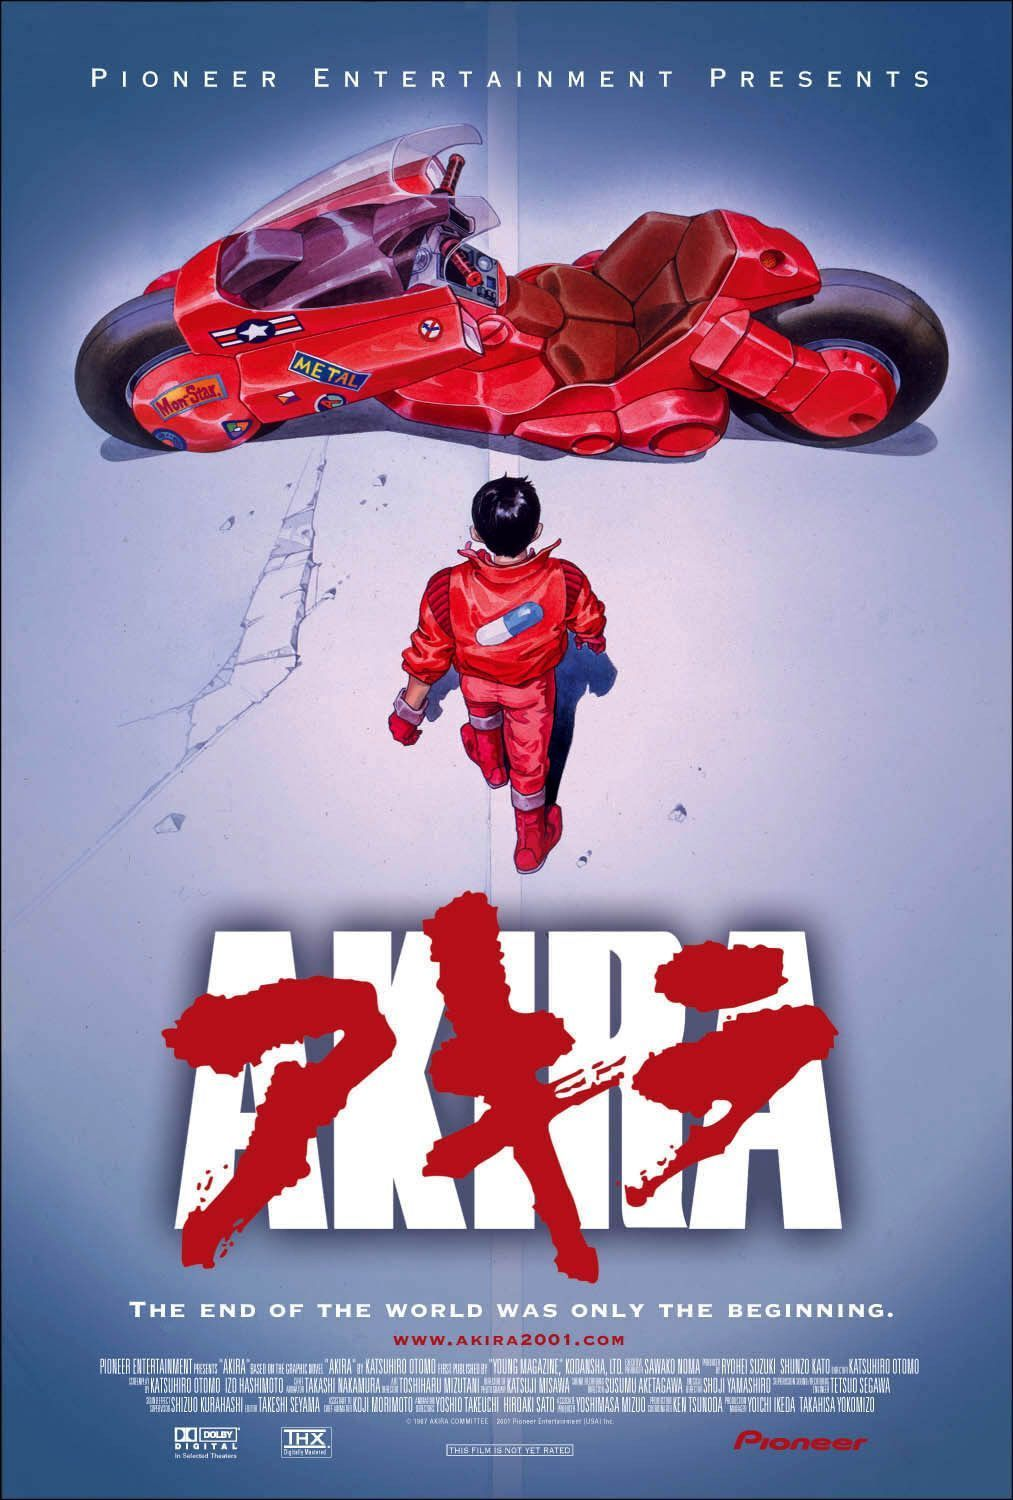 Akira techbizdesign hall of fame